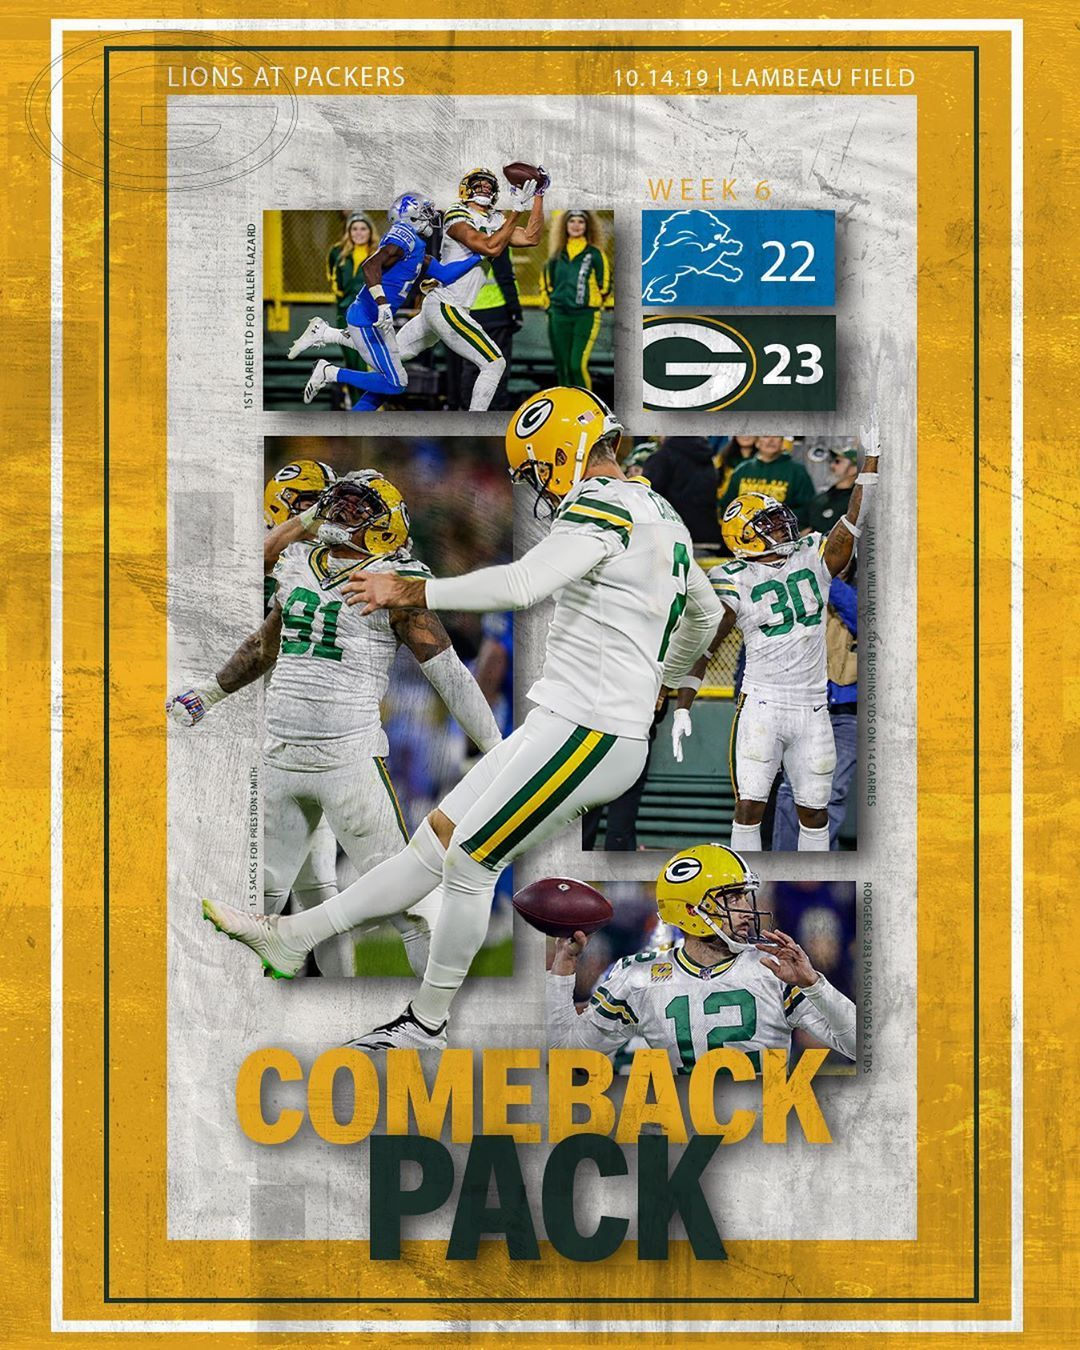 Green Bay Packers On Instagram Comeback Pack Week 6 Victory Poster Gopackgo Packers Green Bay Packers Green Bay